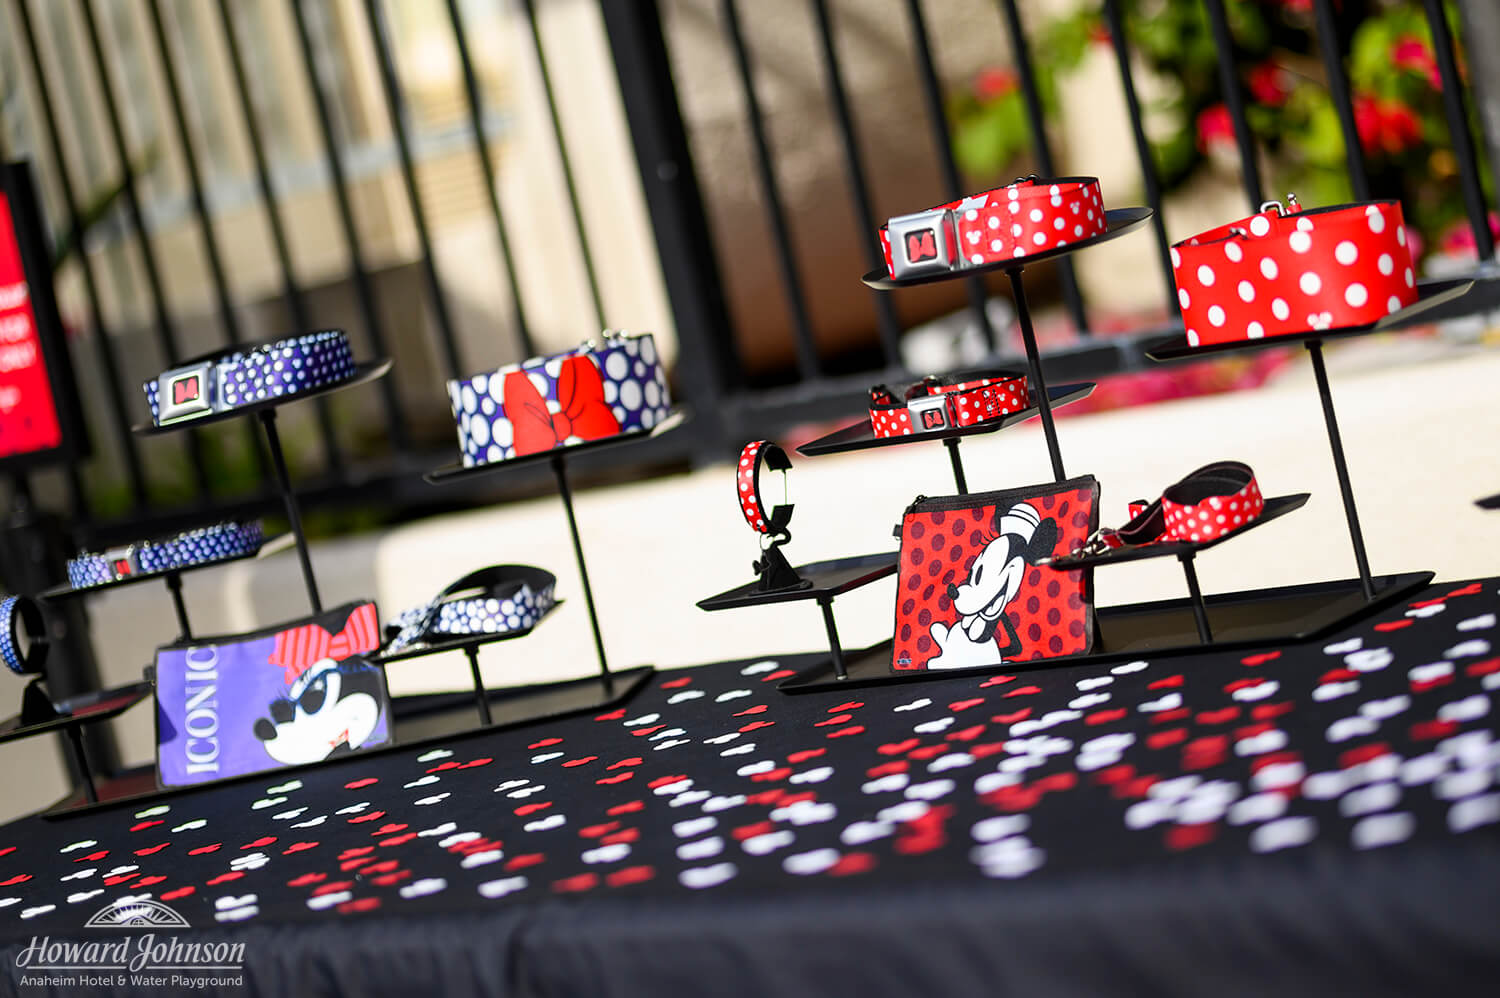 a plethora of Minnie Mouse accessories are displayed on a table with confetti